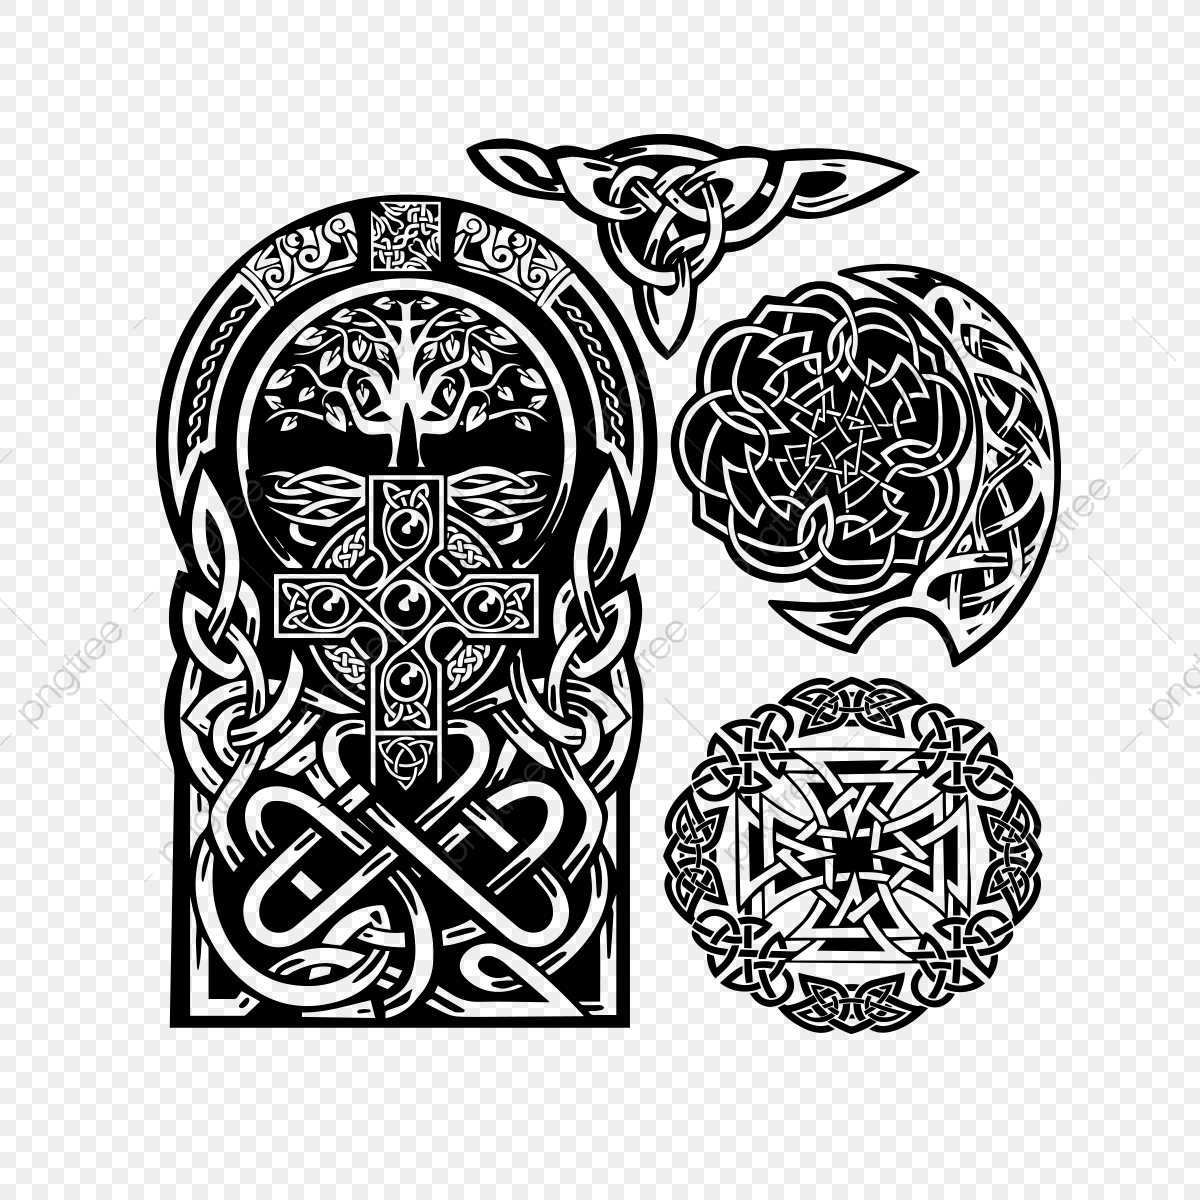 Hand Tattoo Design Tatto Png Stiker Png Transparent Clipart Image And Psd File For Free Download Download free tattoos png images. https pngtree com freepng hand tattoo design 4092577 html